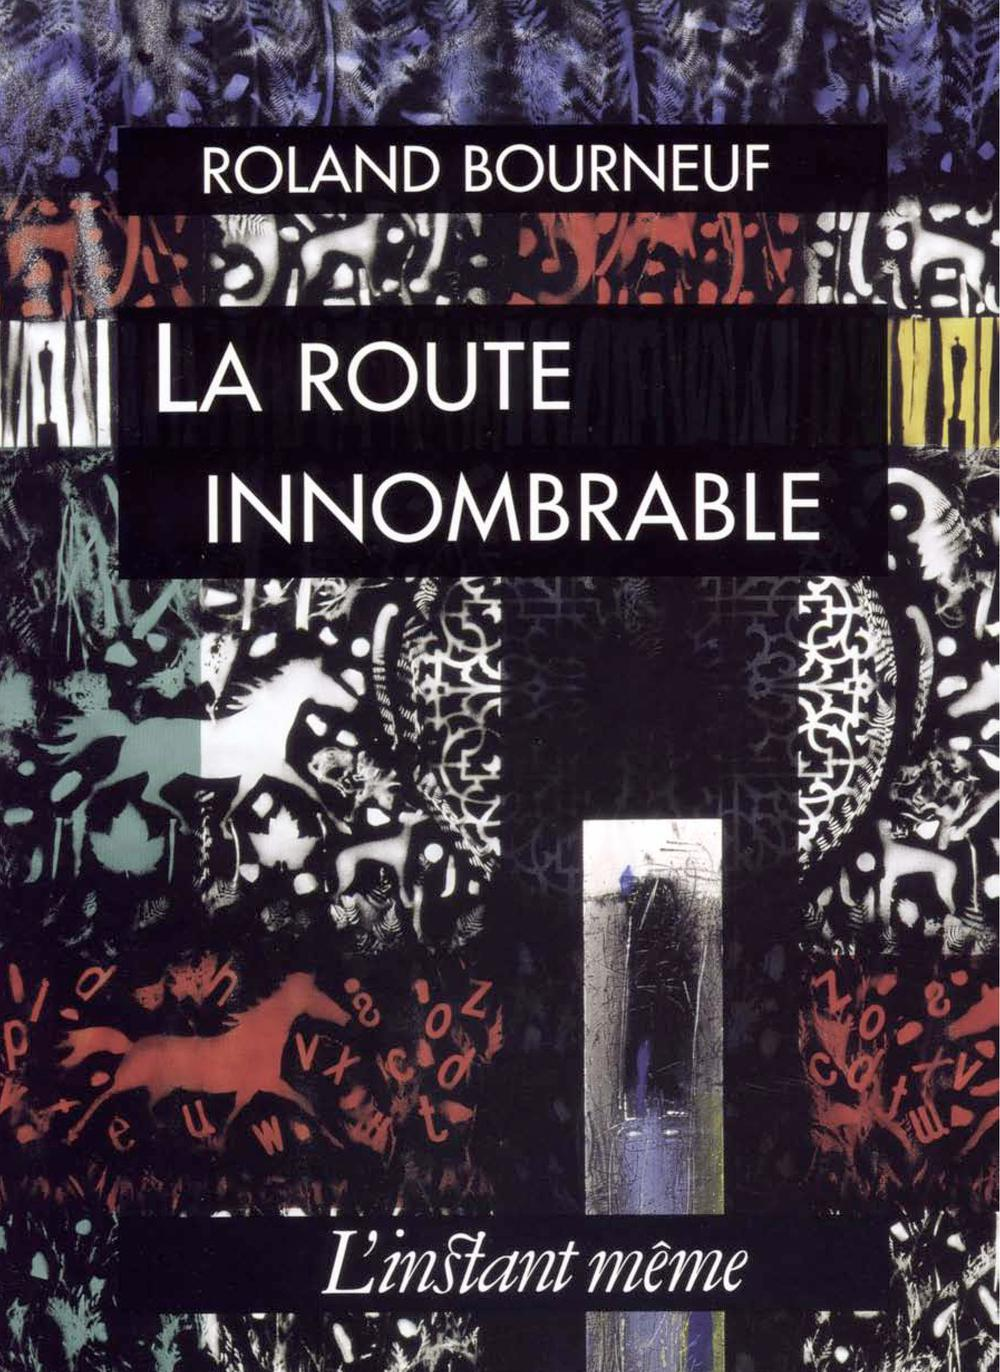 LA ROUTE INNOMBRABLE